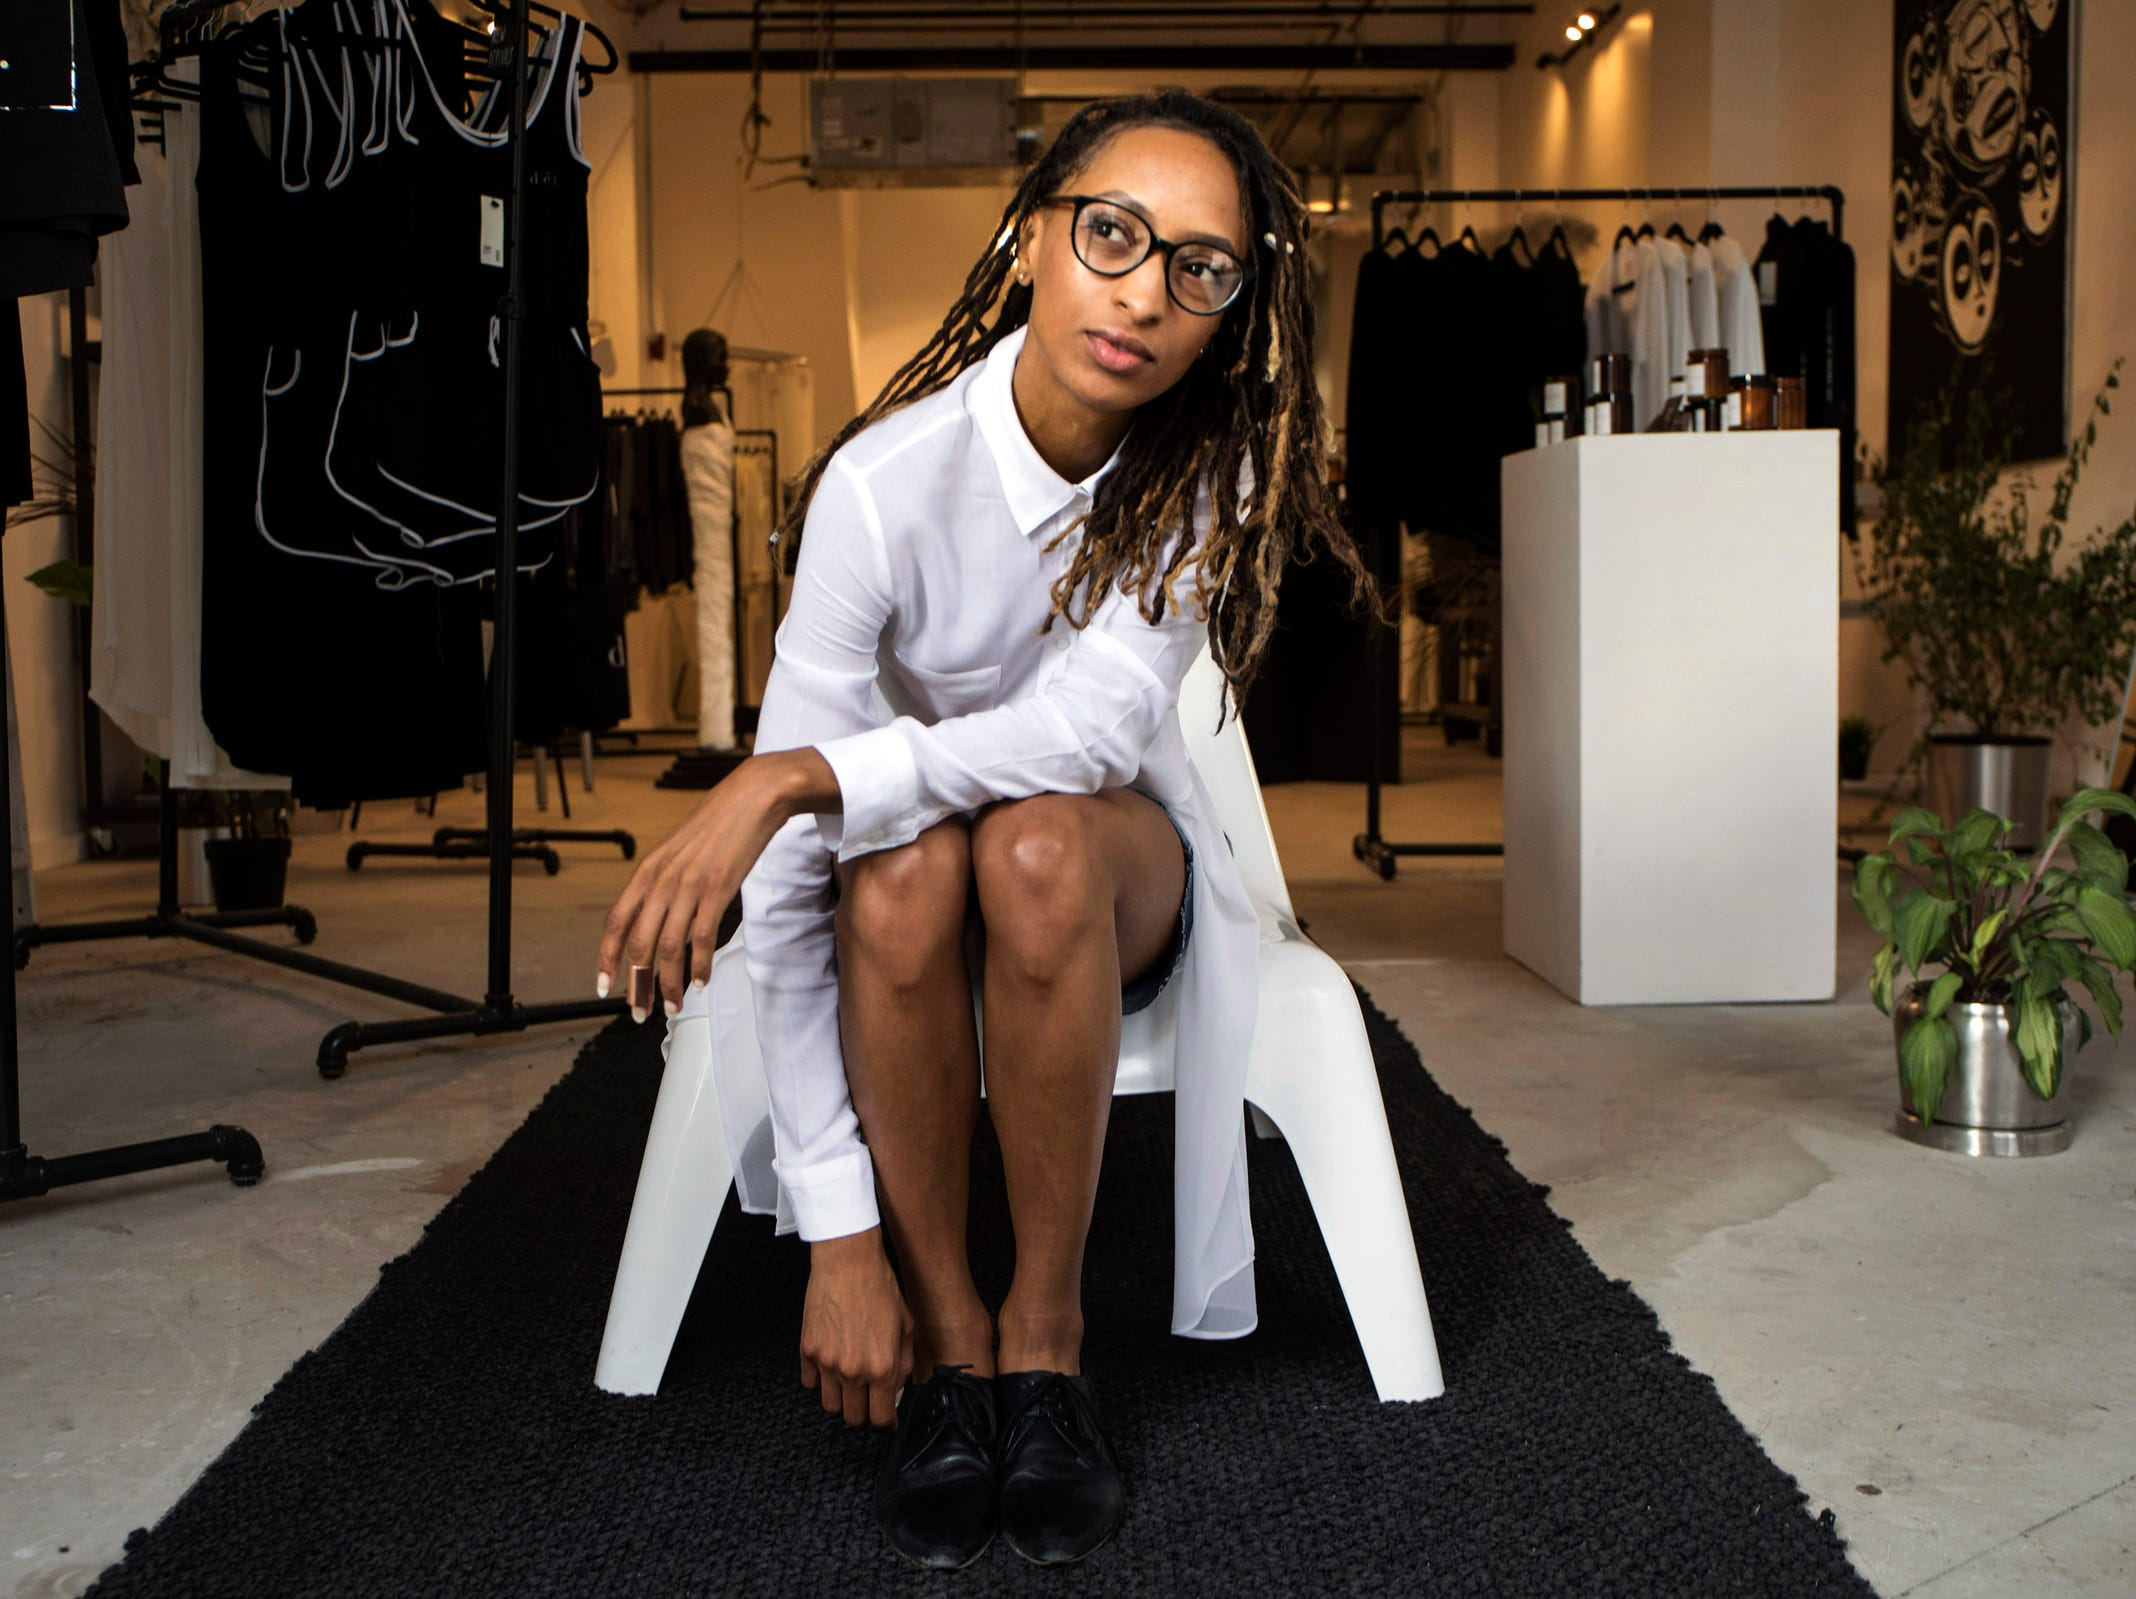 Roslyn Karamoko, 33, founder and CEO of the retail store, Detroit is the New Black, in Detroit on Wednesday, August 29, 2018.